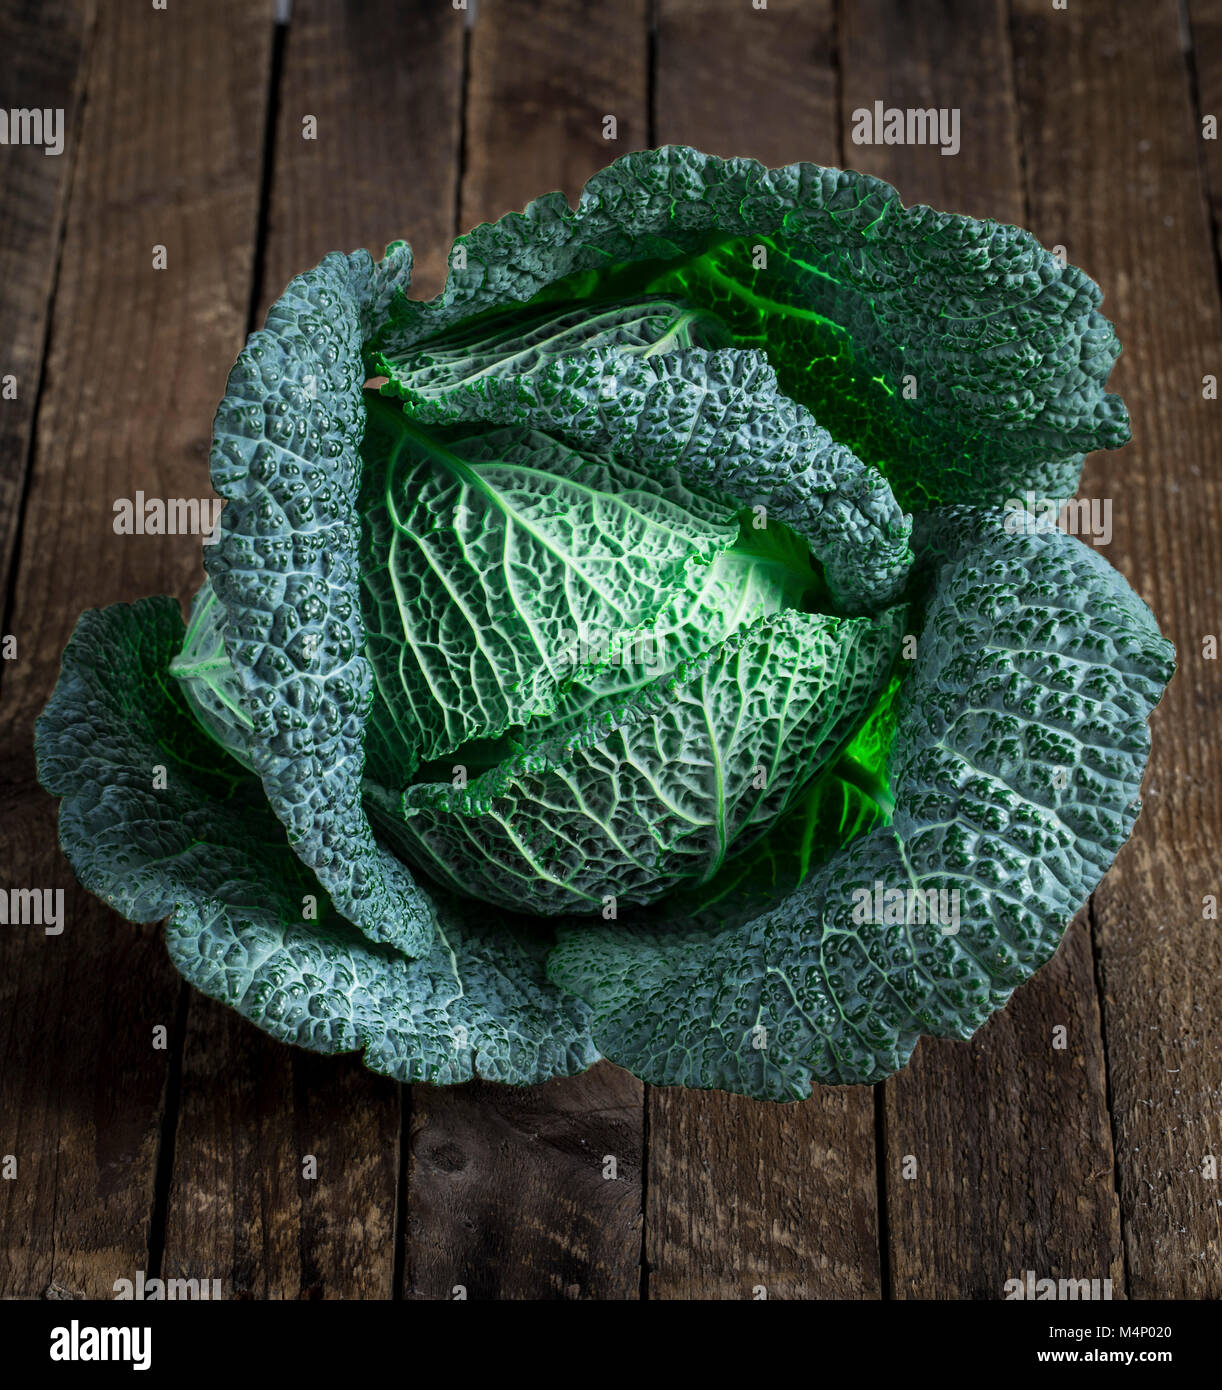 fresh savoy cabbage closeup on rustic wooden background - Stock Image